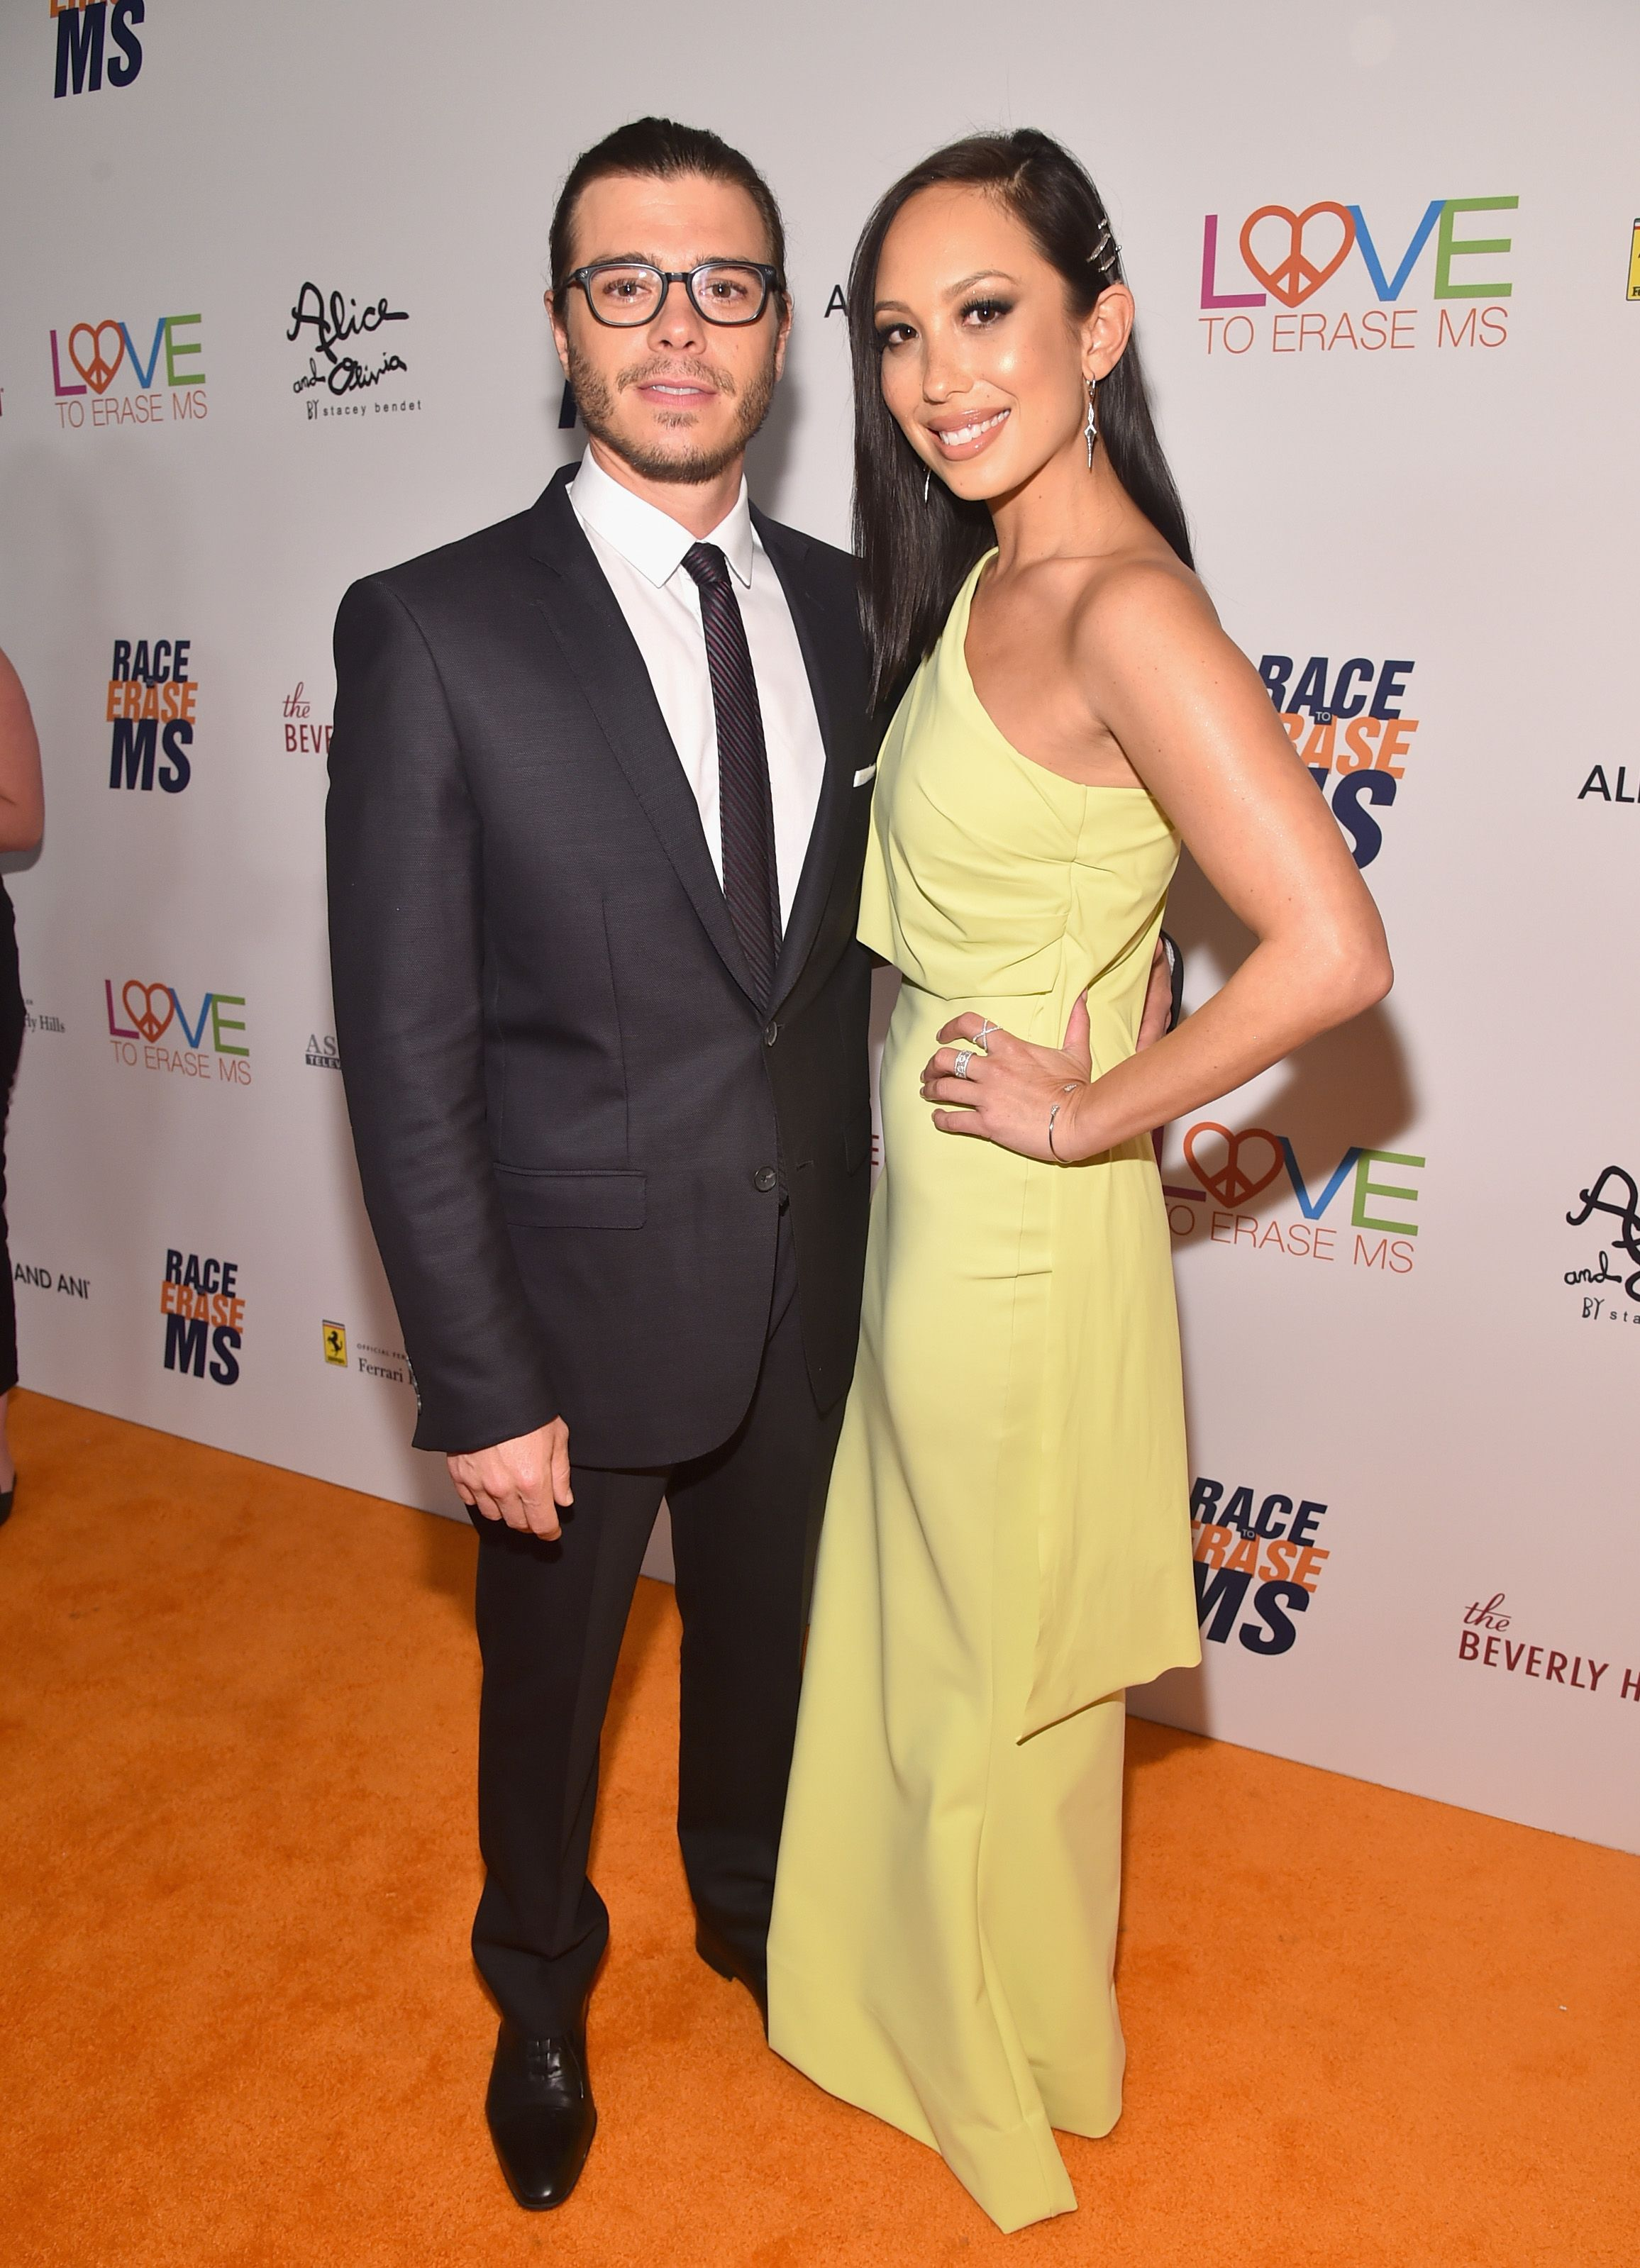 Matthew Lawrence and Cheryl Burke attend the 25th Annual Race To Erase MS Gala in 2018 in Beverly Hills | Source: Getty Images